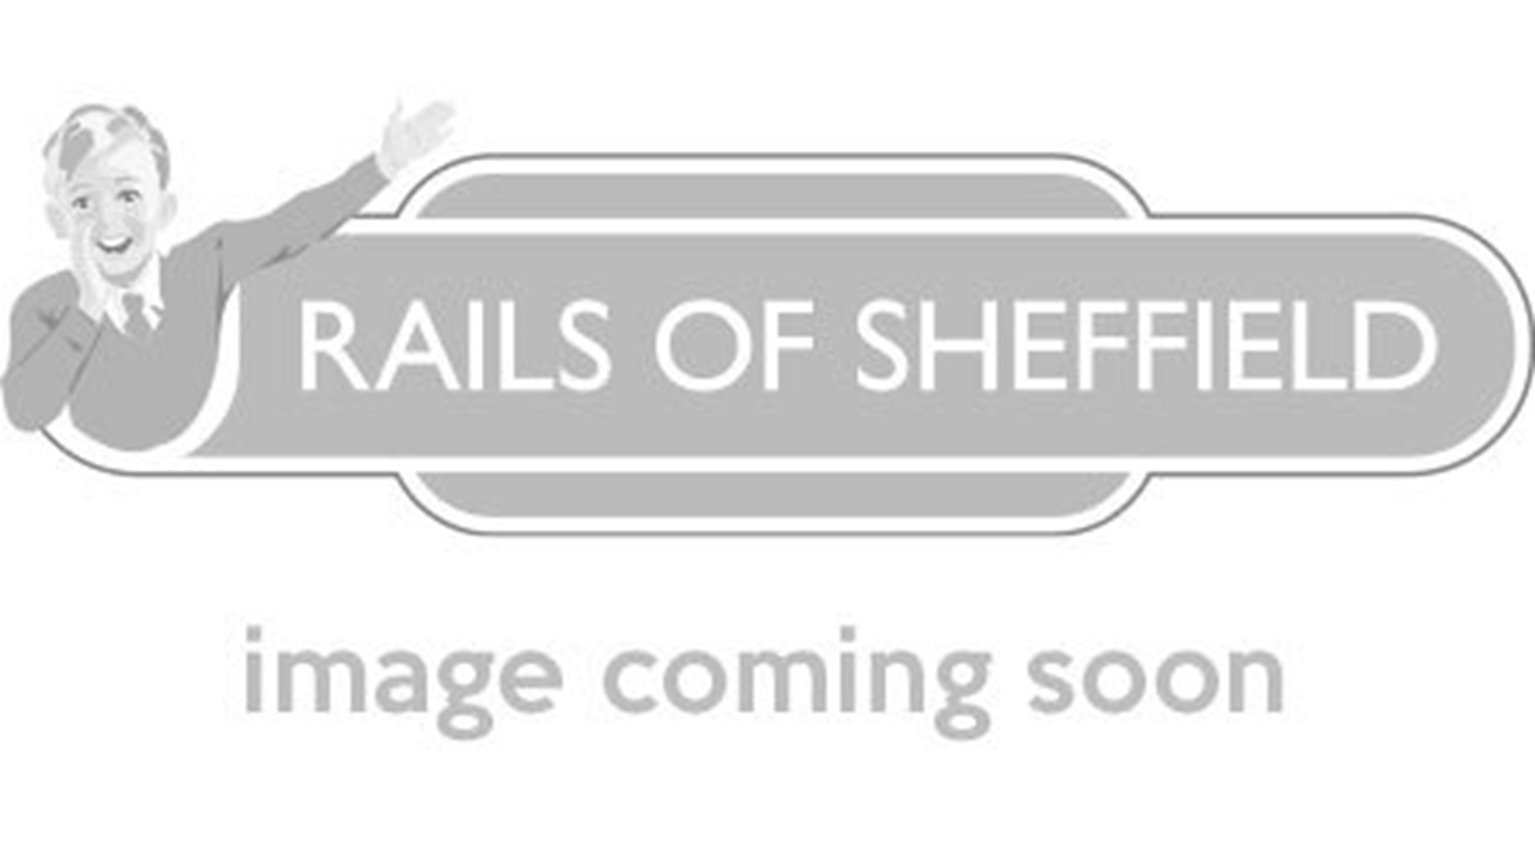 16 Ton Steel Mineral Wagon NCB Grey Weathered